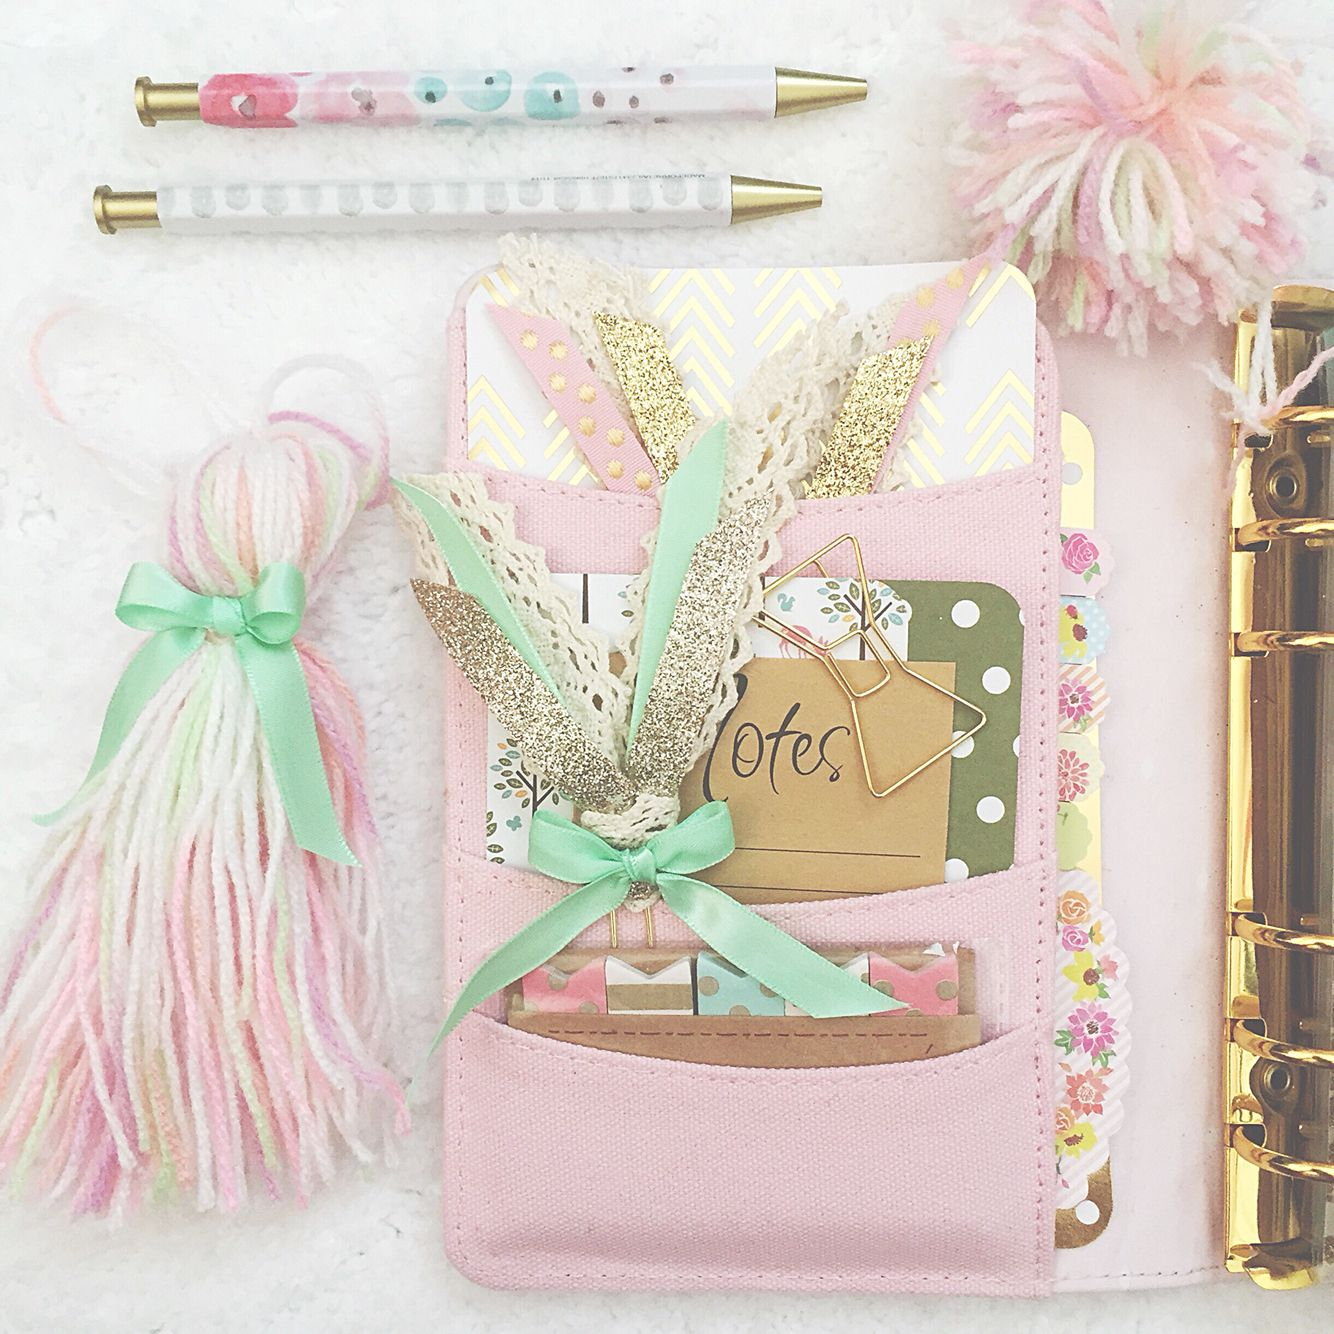 New pastel planner goodies